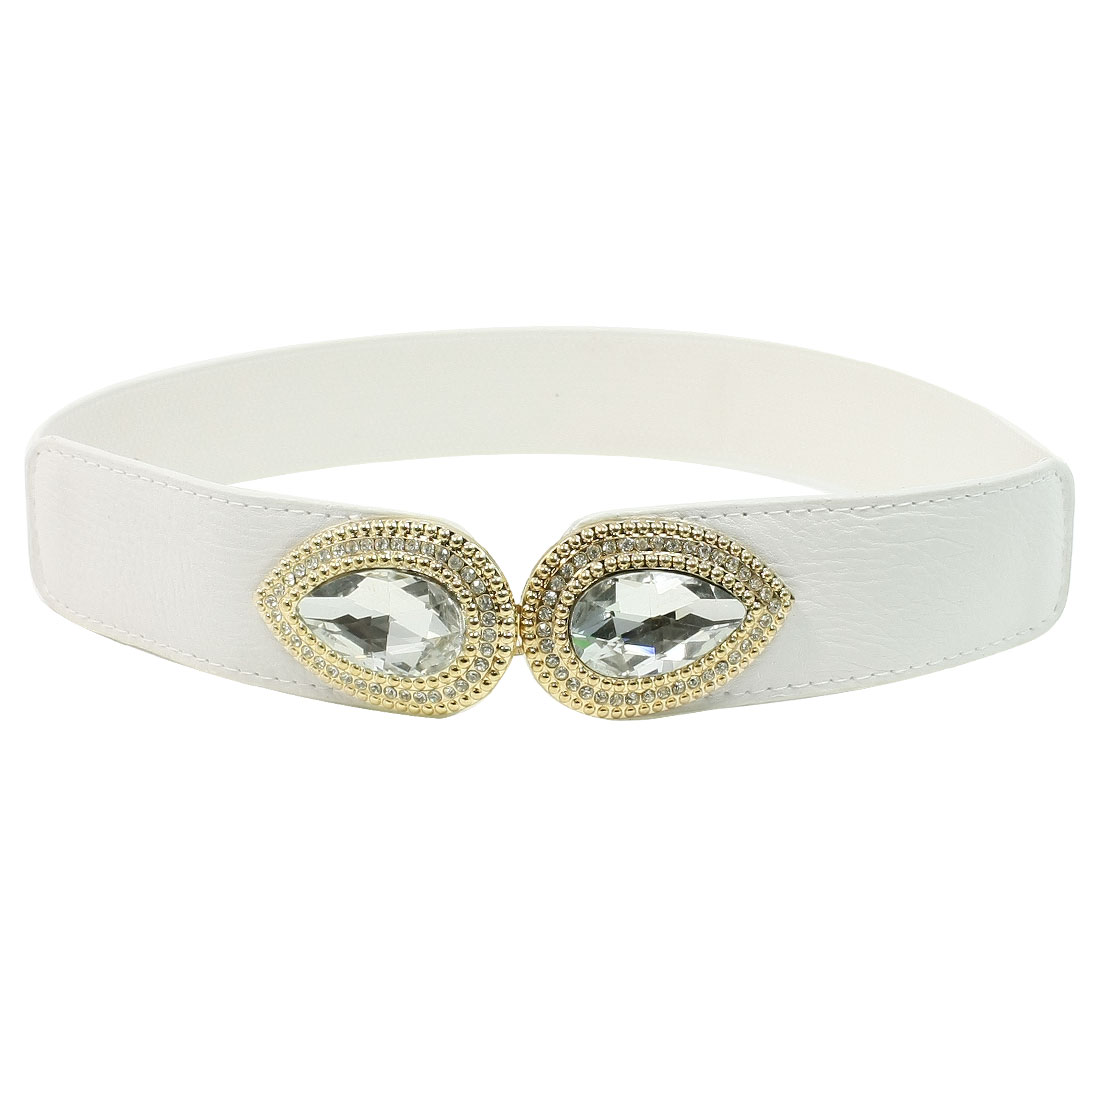 White Leaf Shaped Crystal Interlock Buckle Textured Elastic Cinch Belt Band